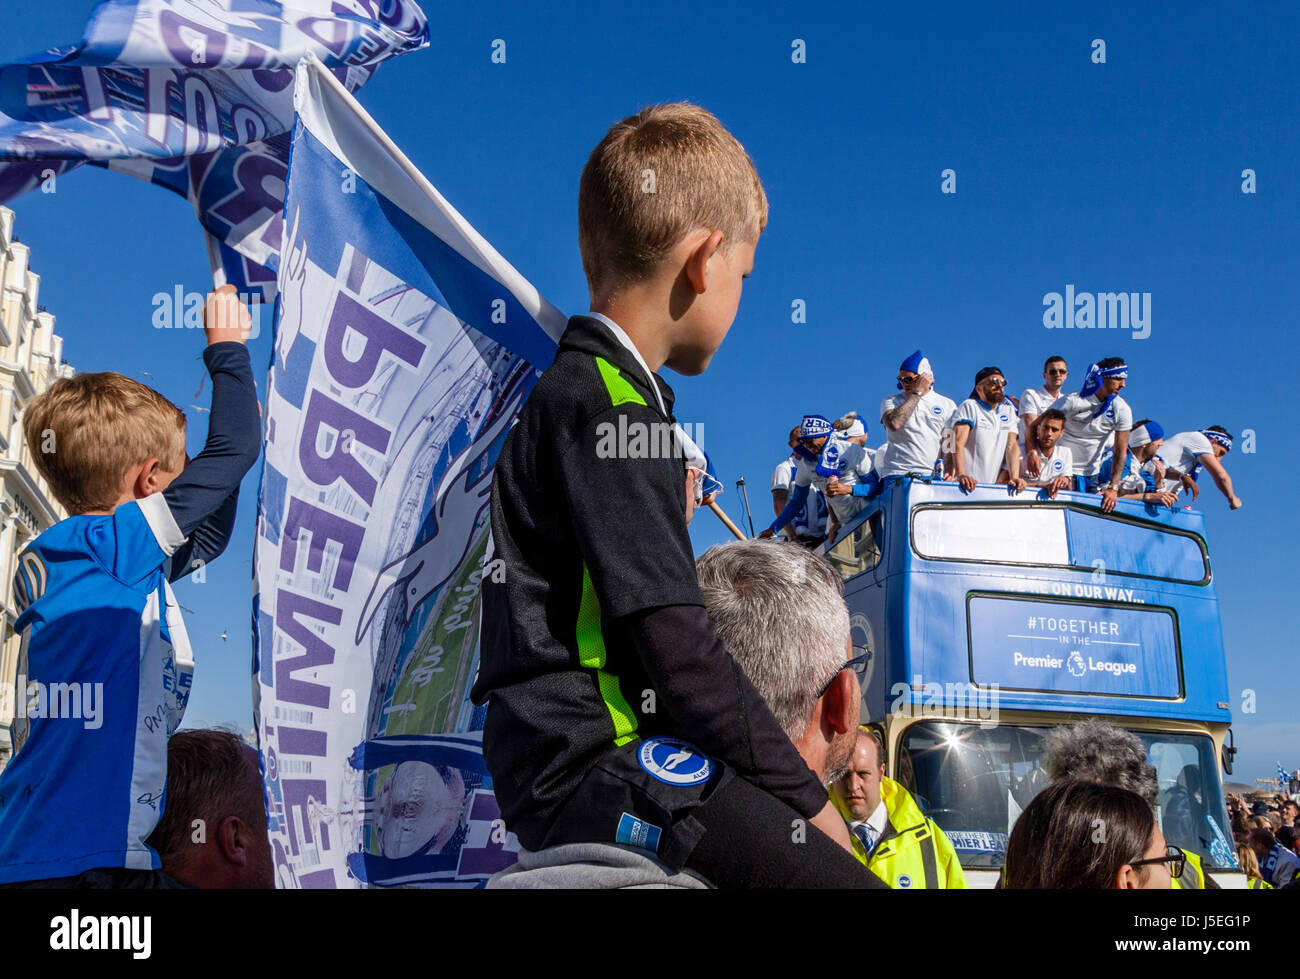 Young Brighton and Hove Albion Football Fans Watch As The Team Bus Passes During The Club's Promotion Parade, - Stock Image